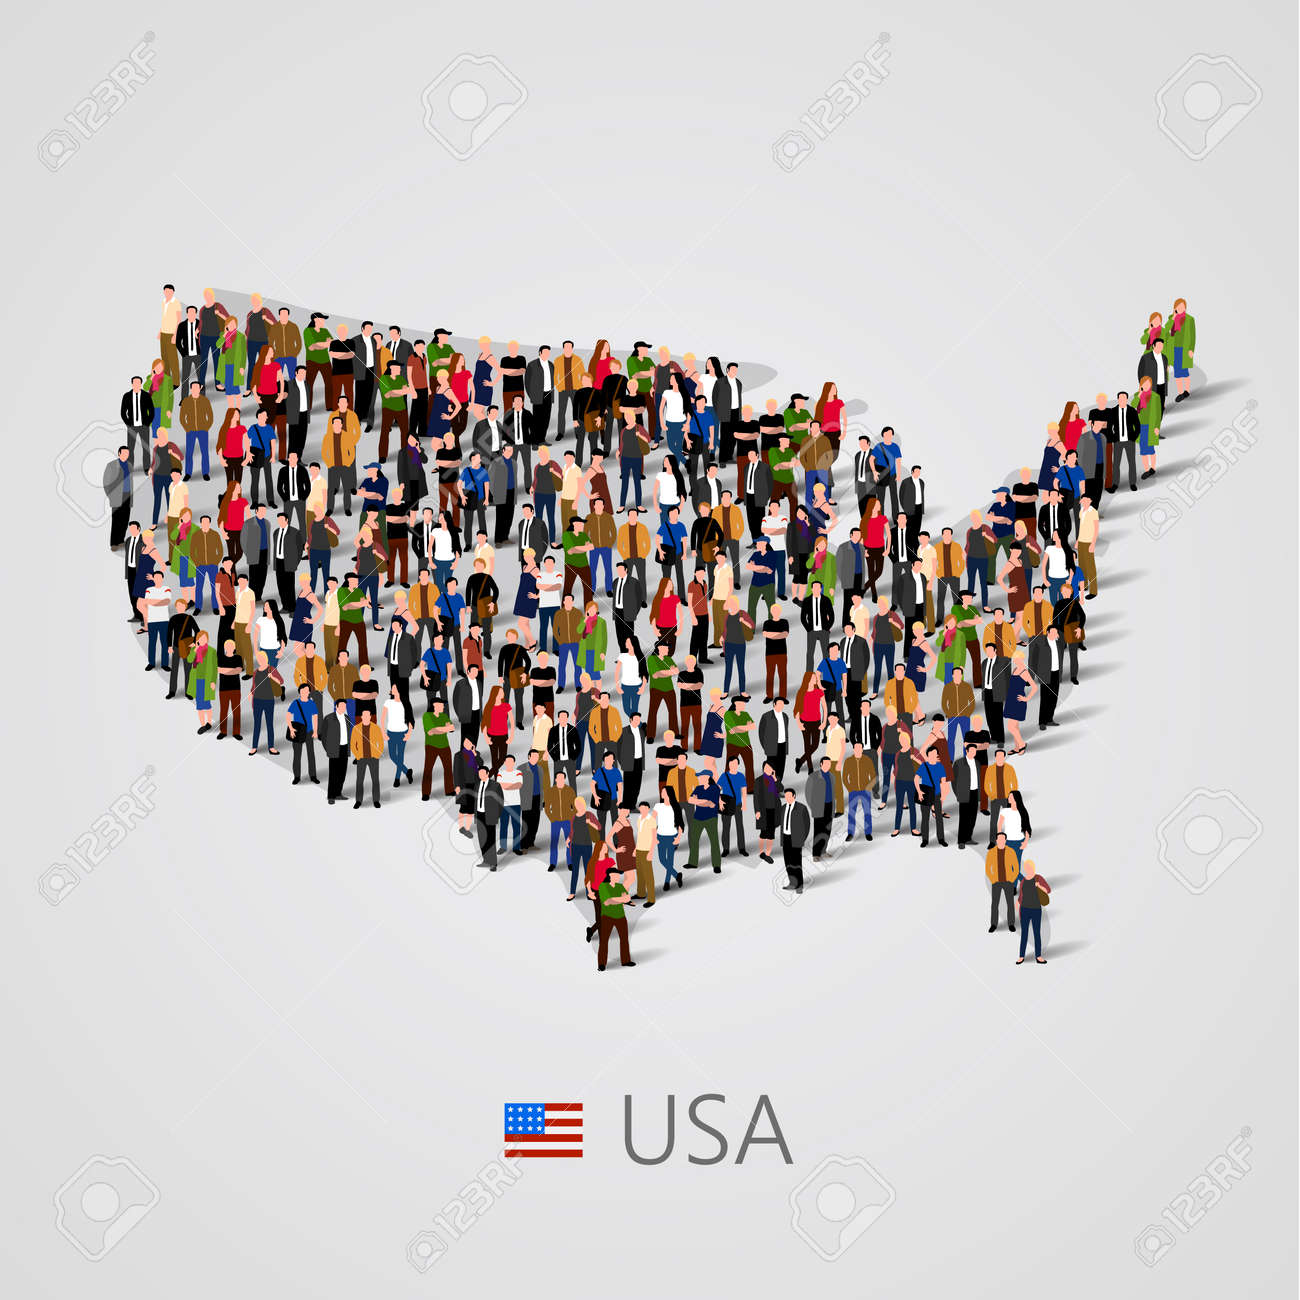 Large Group Of People In United States Of America Or USA Map - Us map with people